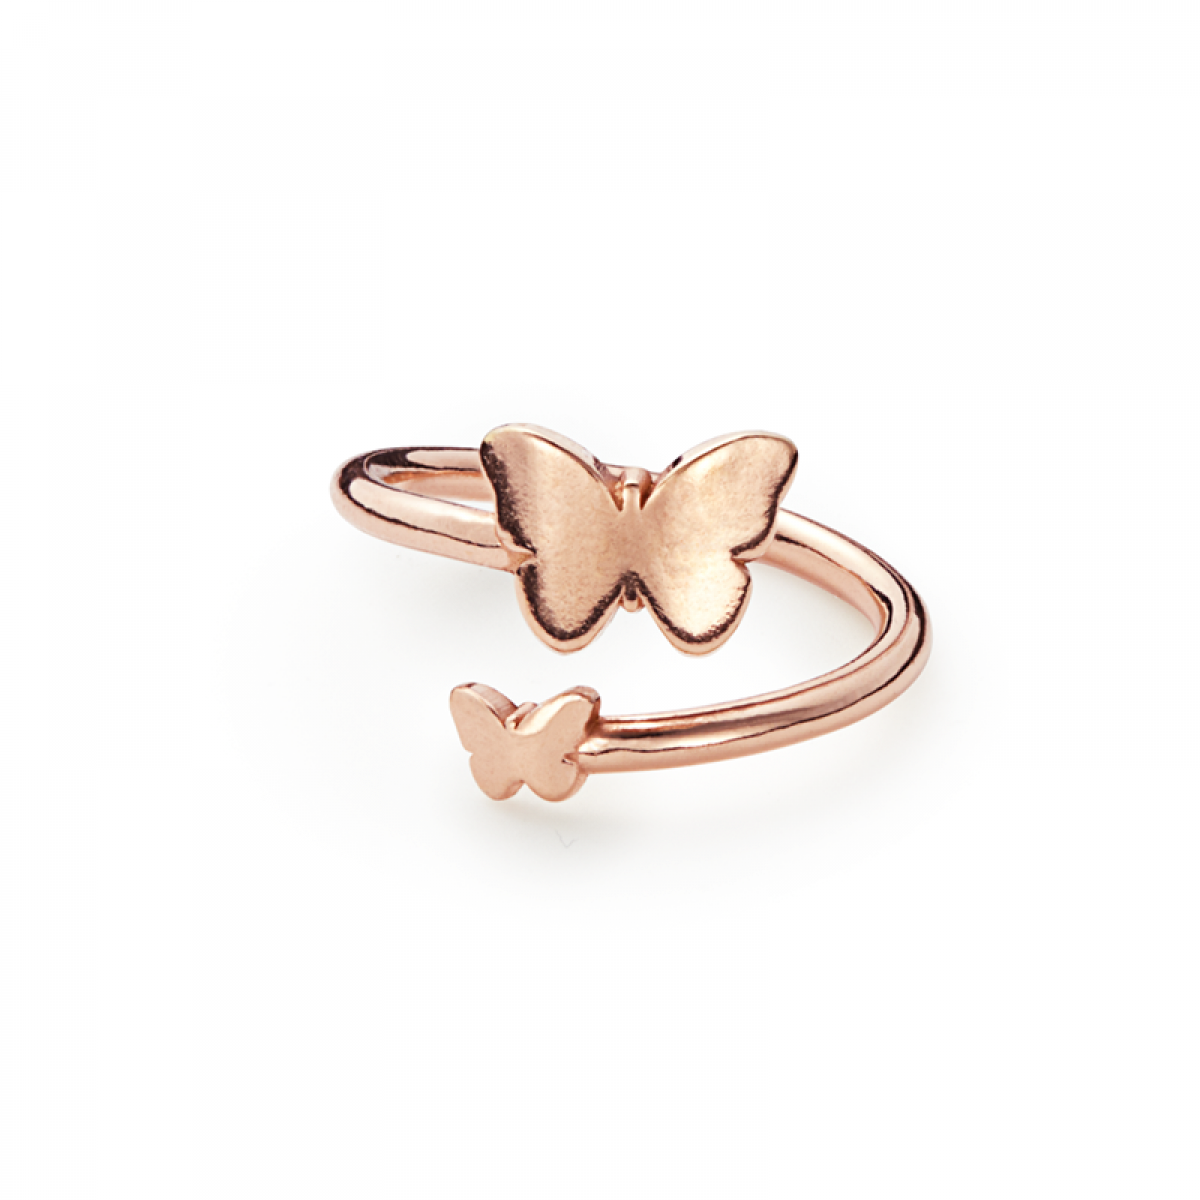 Bracelets, Necklaces, Earrings and More | Ring wraps, Butterfly ...